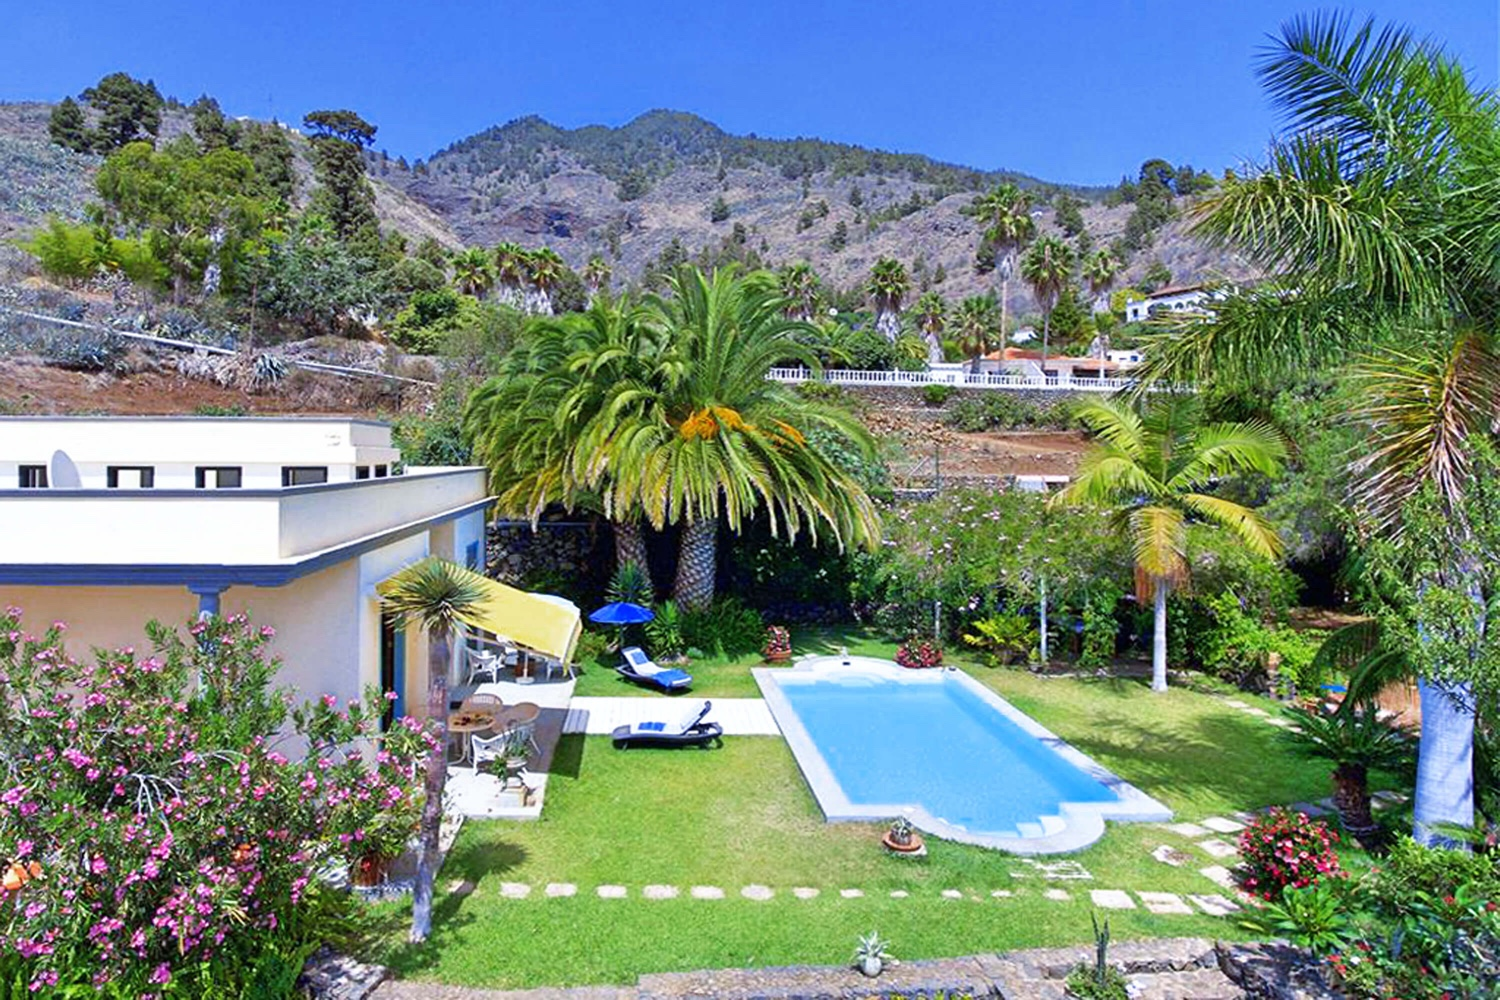 Spacious colonial style villa with large private pool and nice covered terrace overlooking the beautiful garden and valley of Los Llanos de Aridane